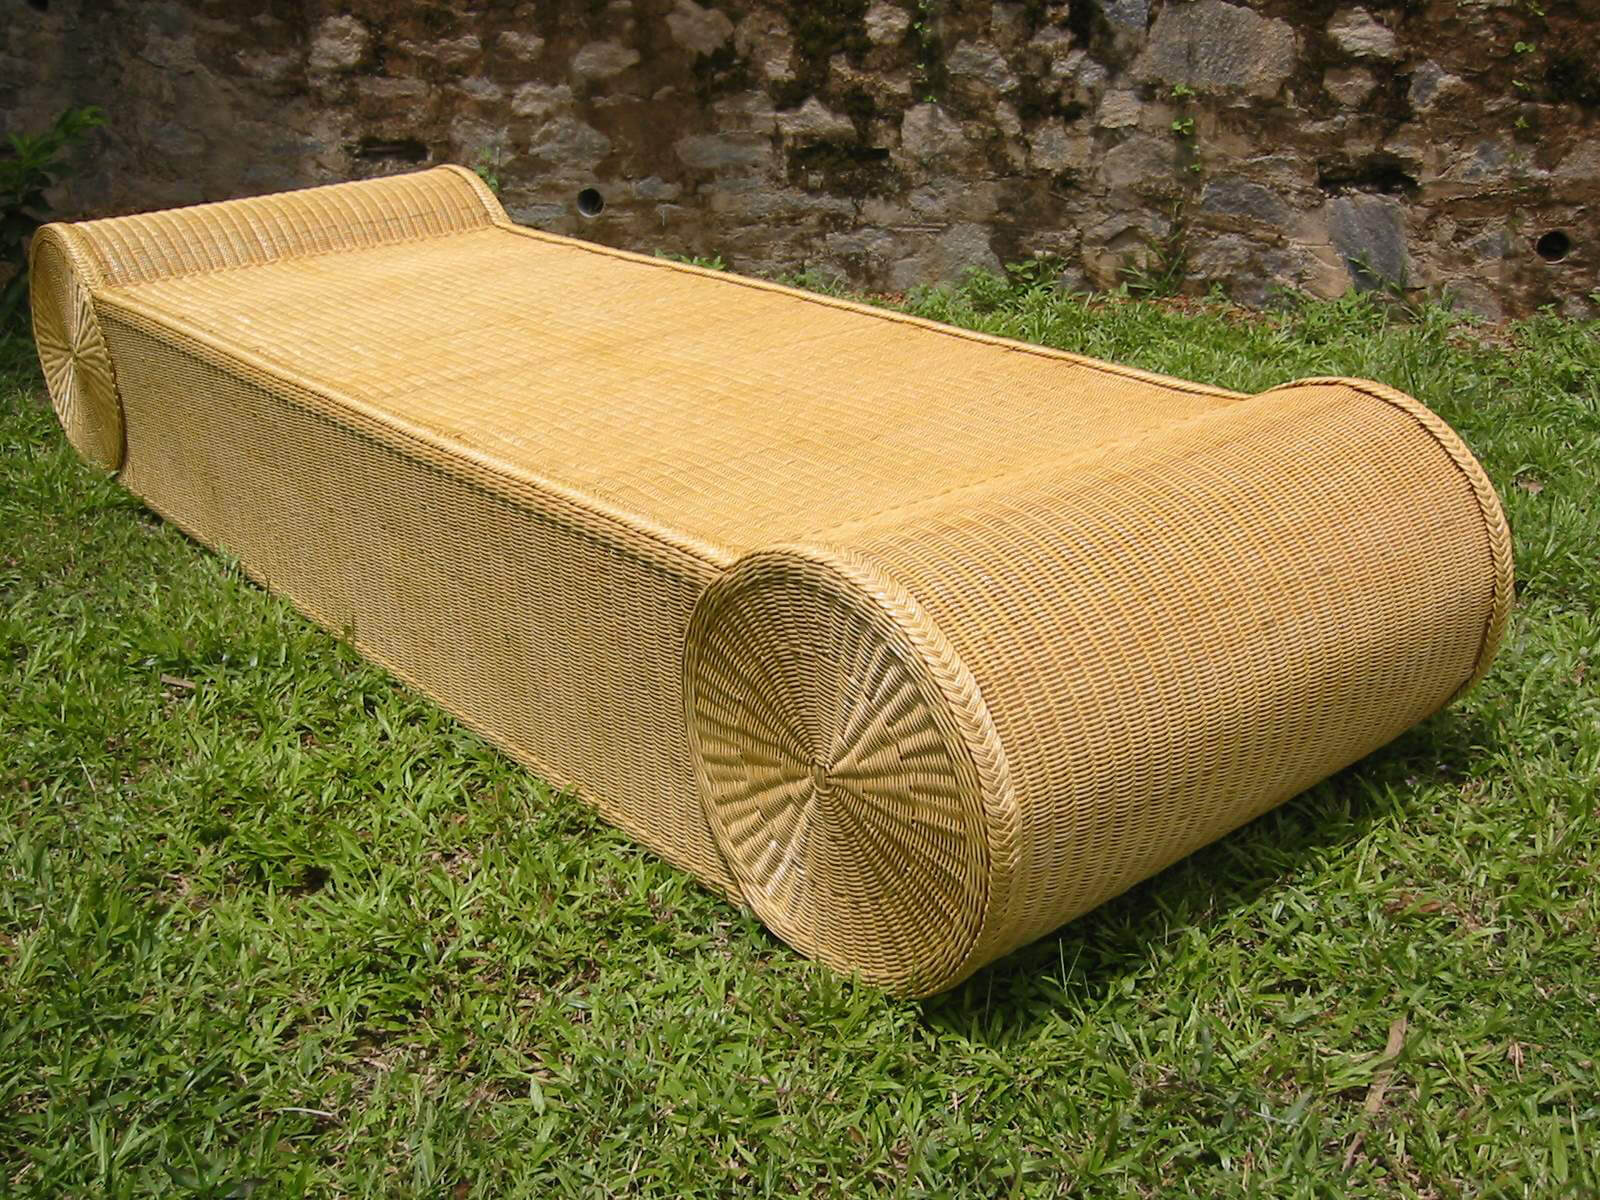 Rattan Bed | Made in Sri Lanka: Curated by Colomboscope | STIRworld